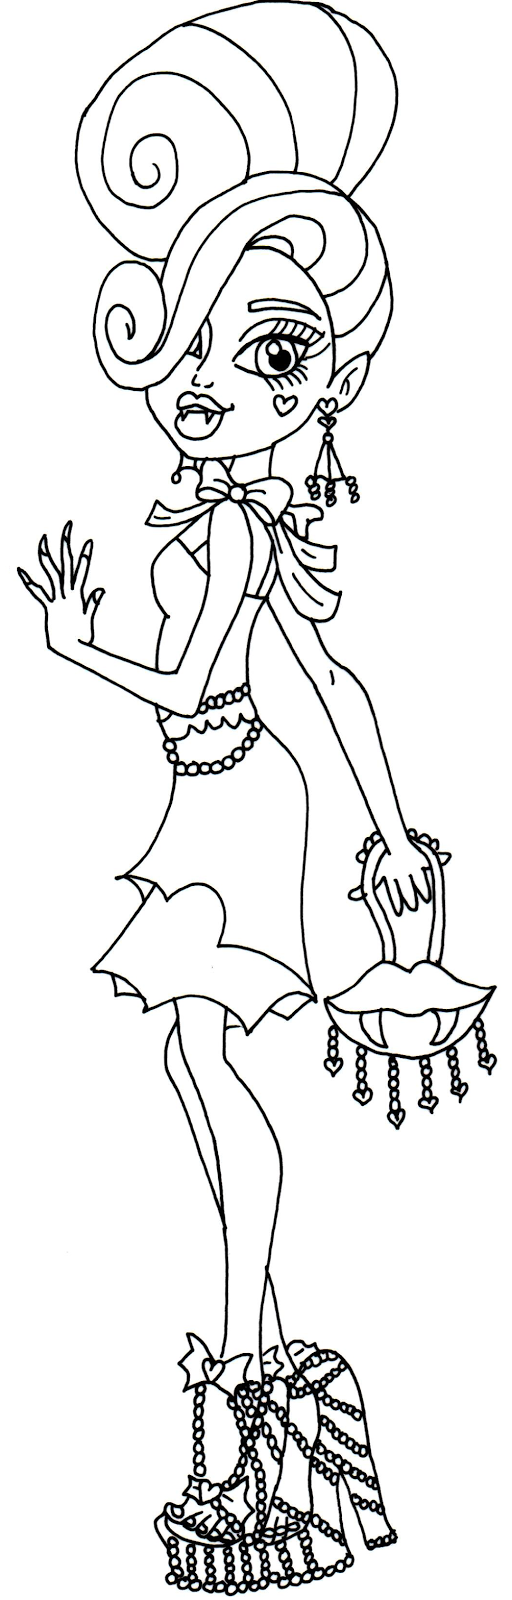 holt hyde monster high coloring page | coloring pages of epicness ... - Coloring Pages Monster High Dolls